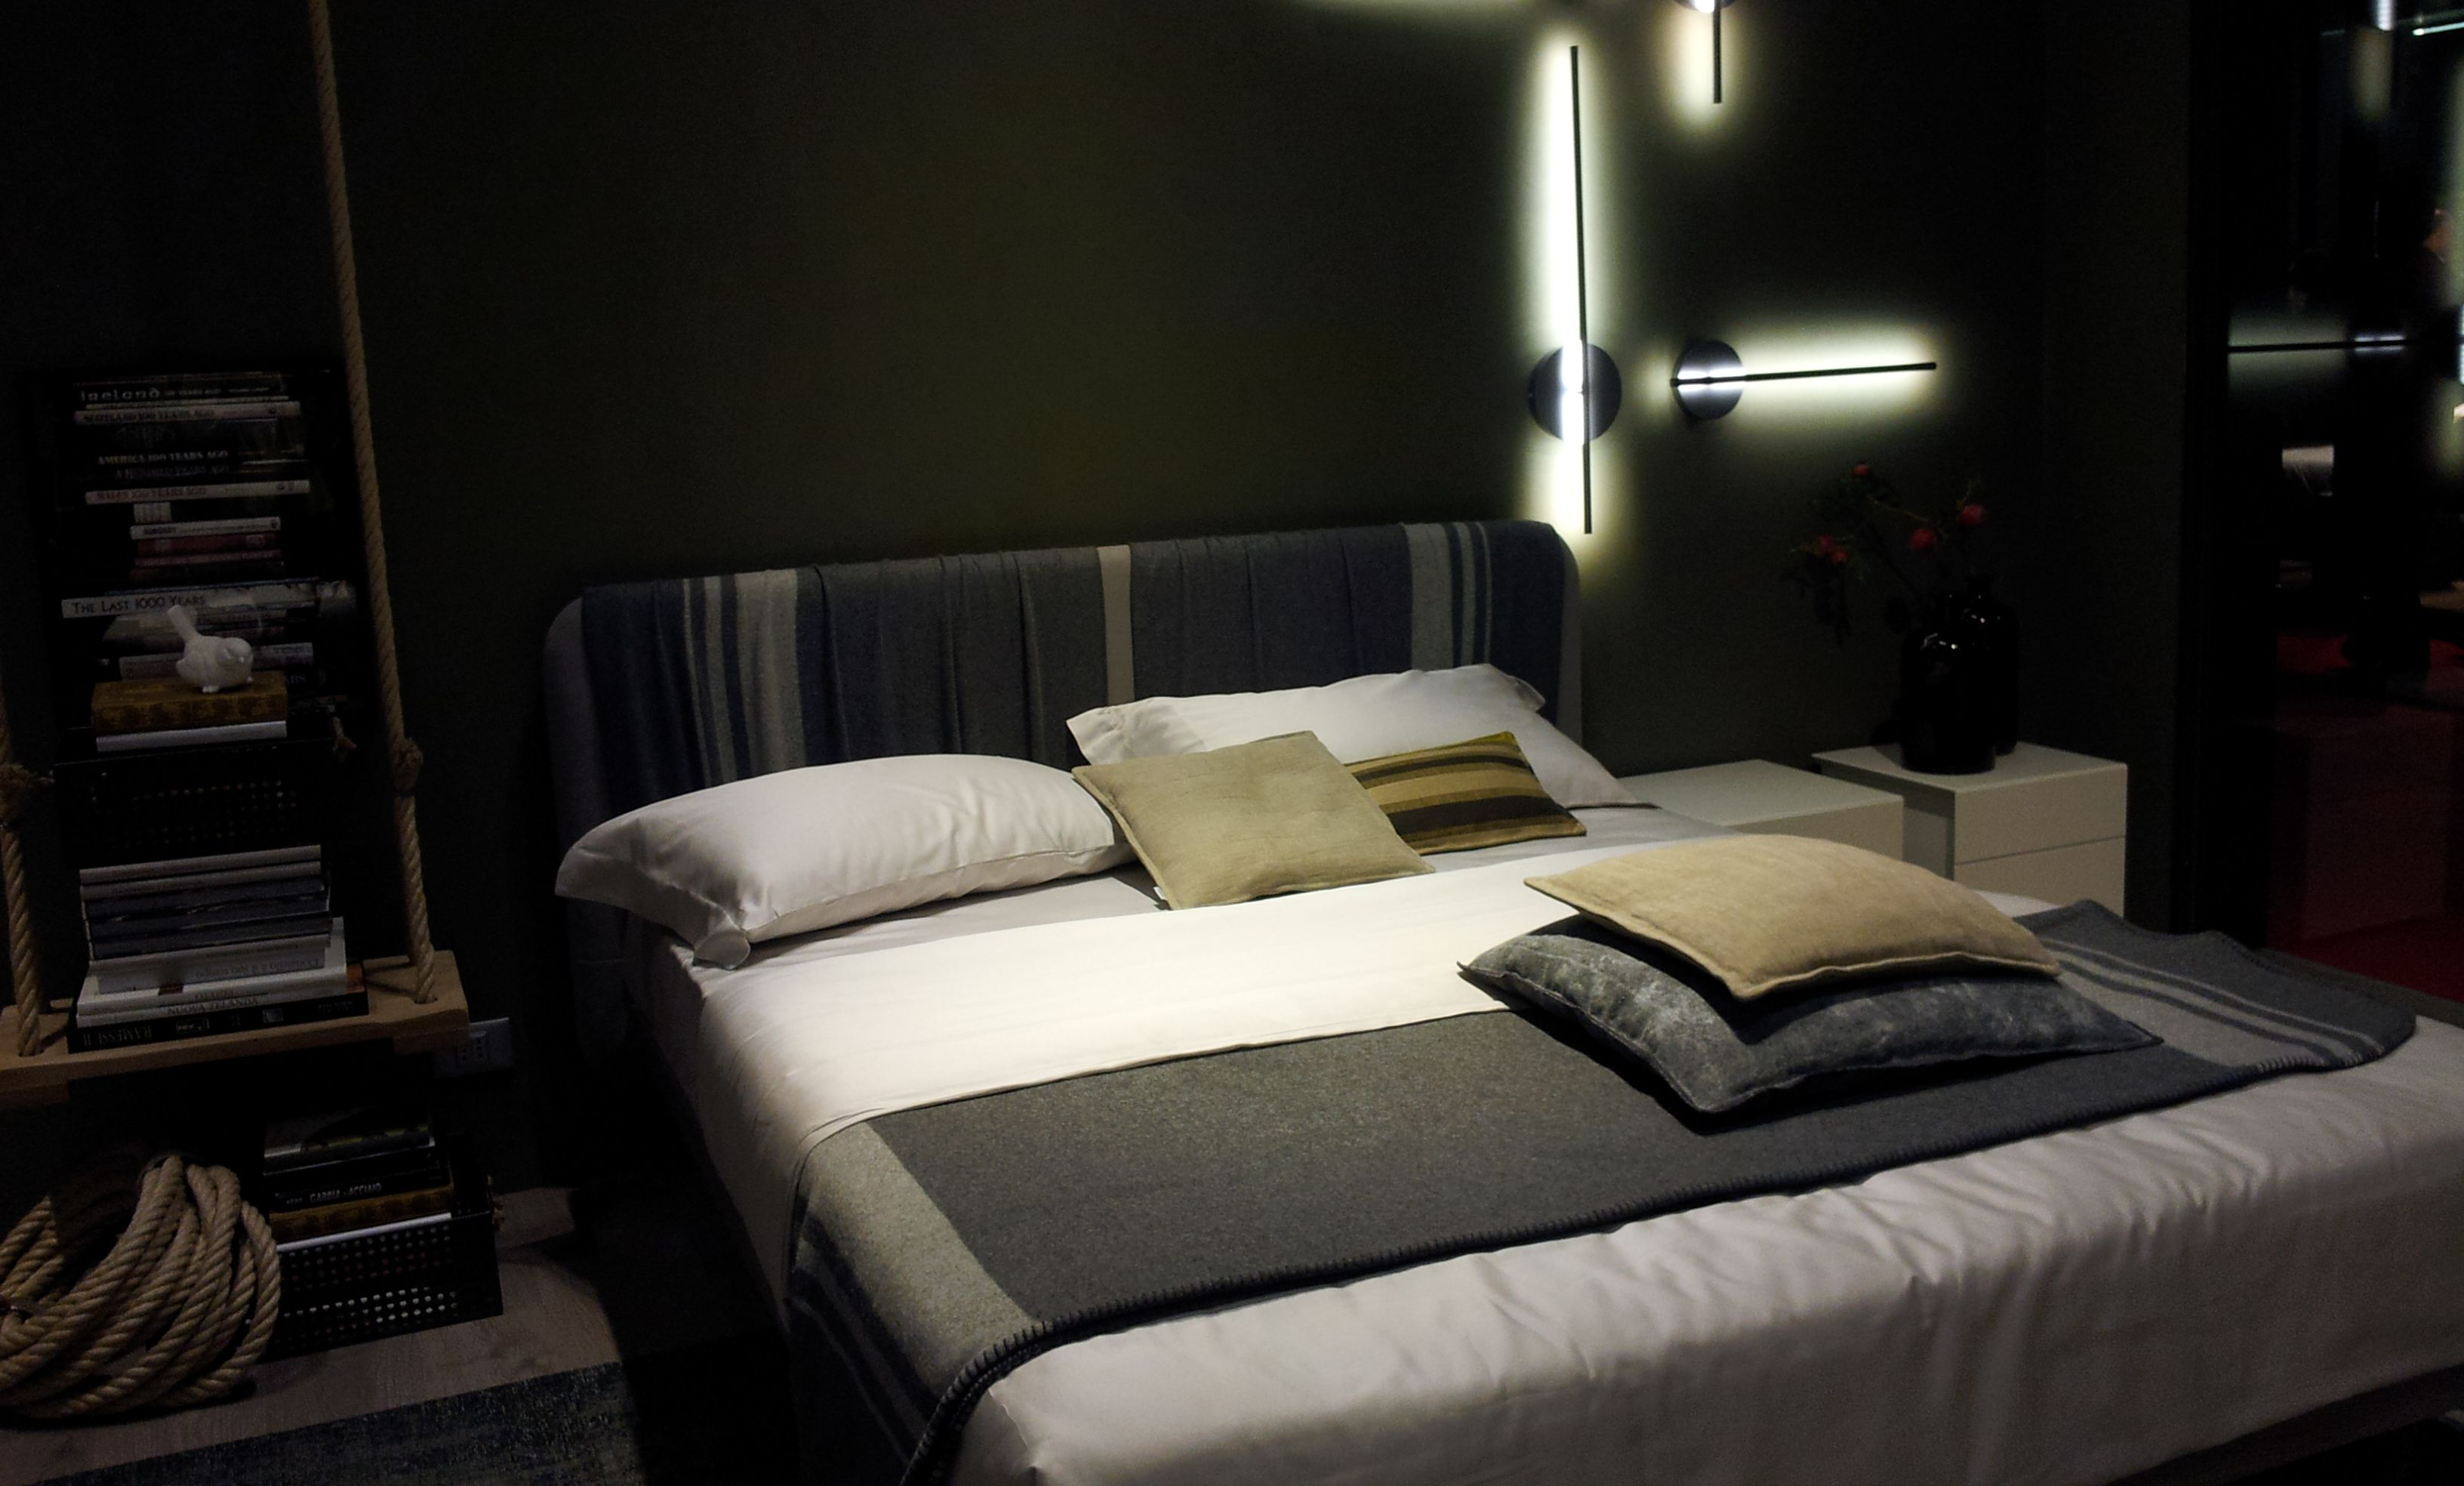 olive green bedroom (by tomassini) | salone del mobile milan with